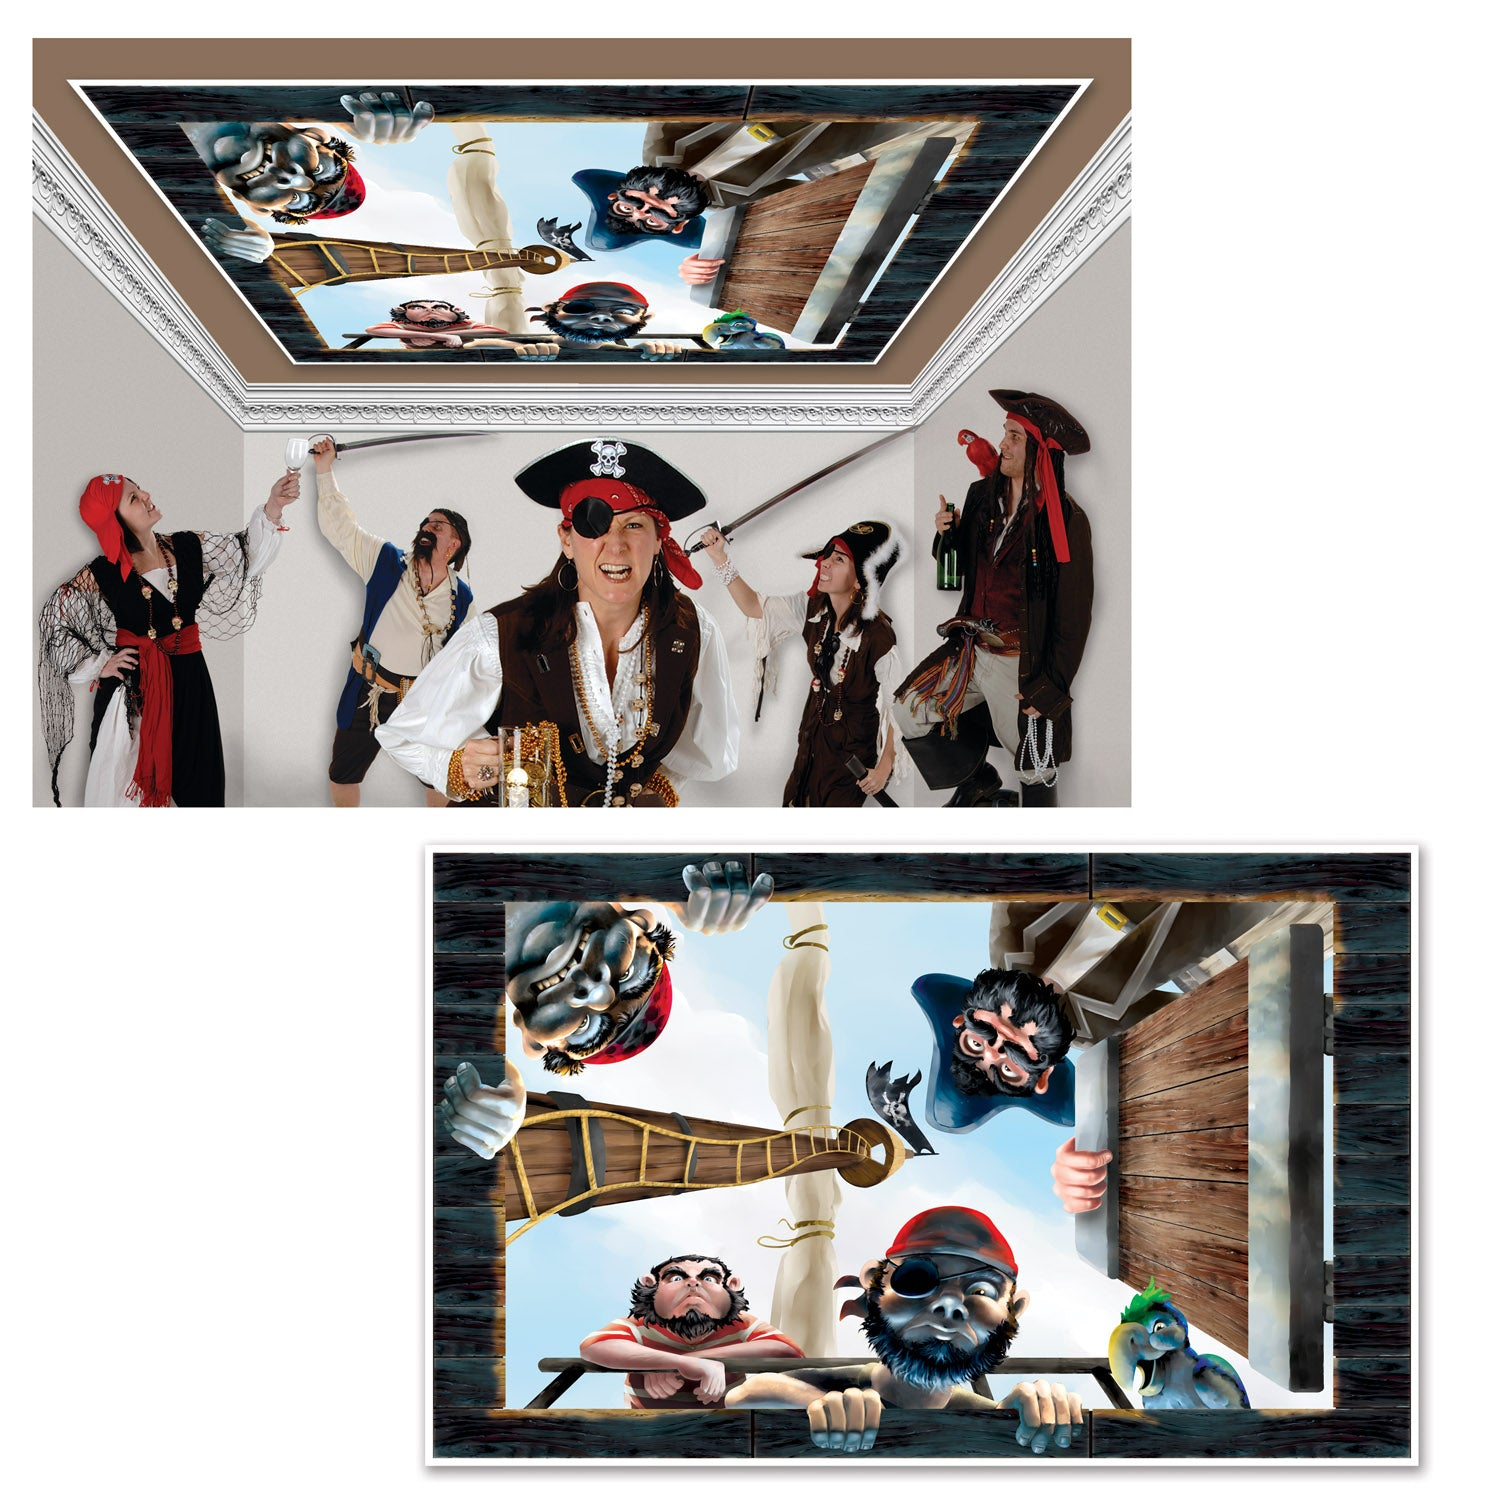 Pirate Insta-View by Beistle - Pirate Theme Decorations